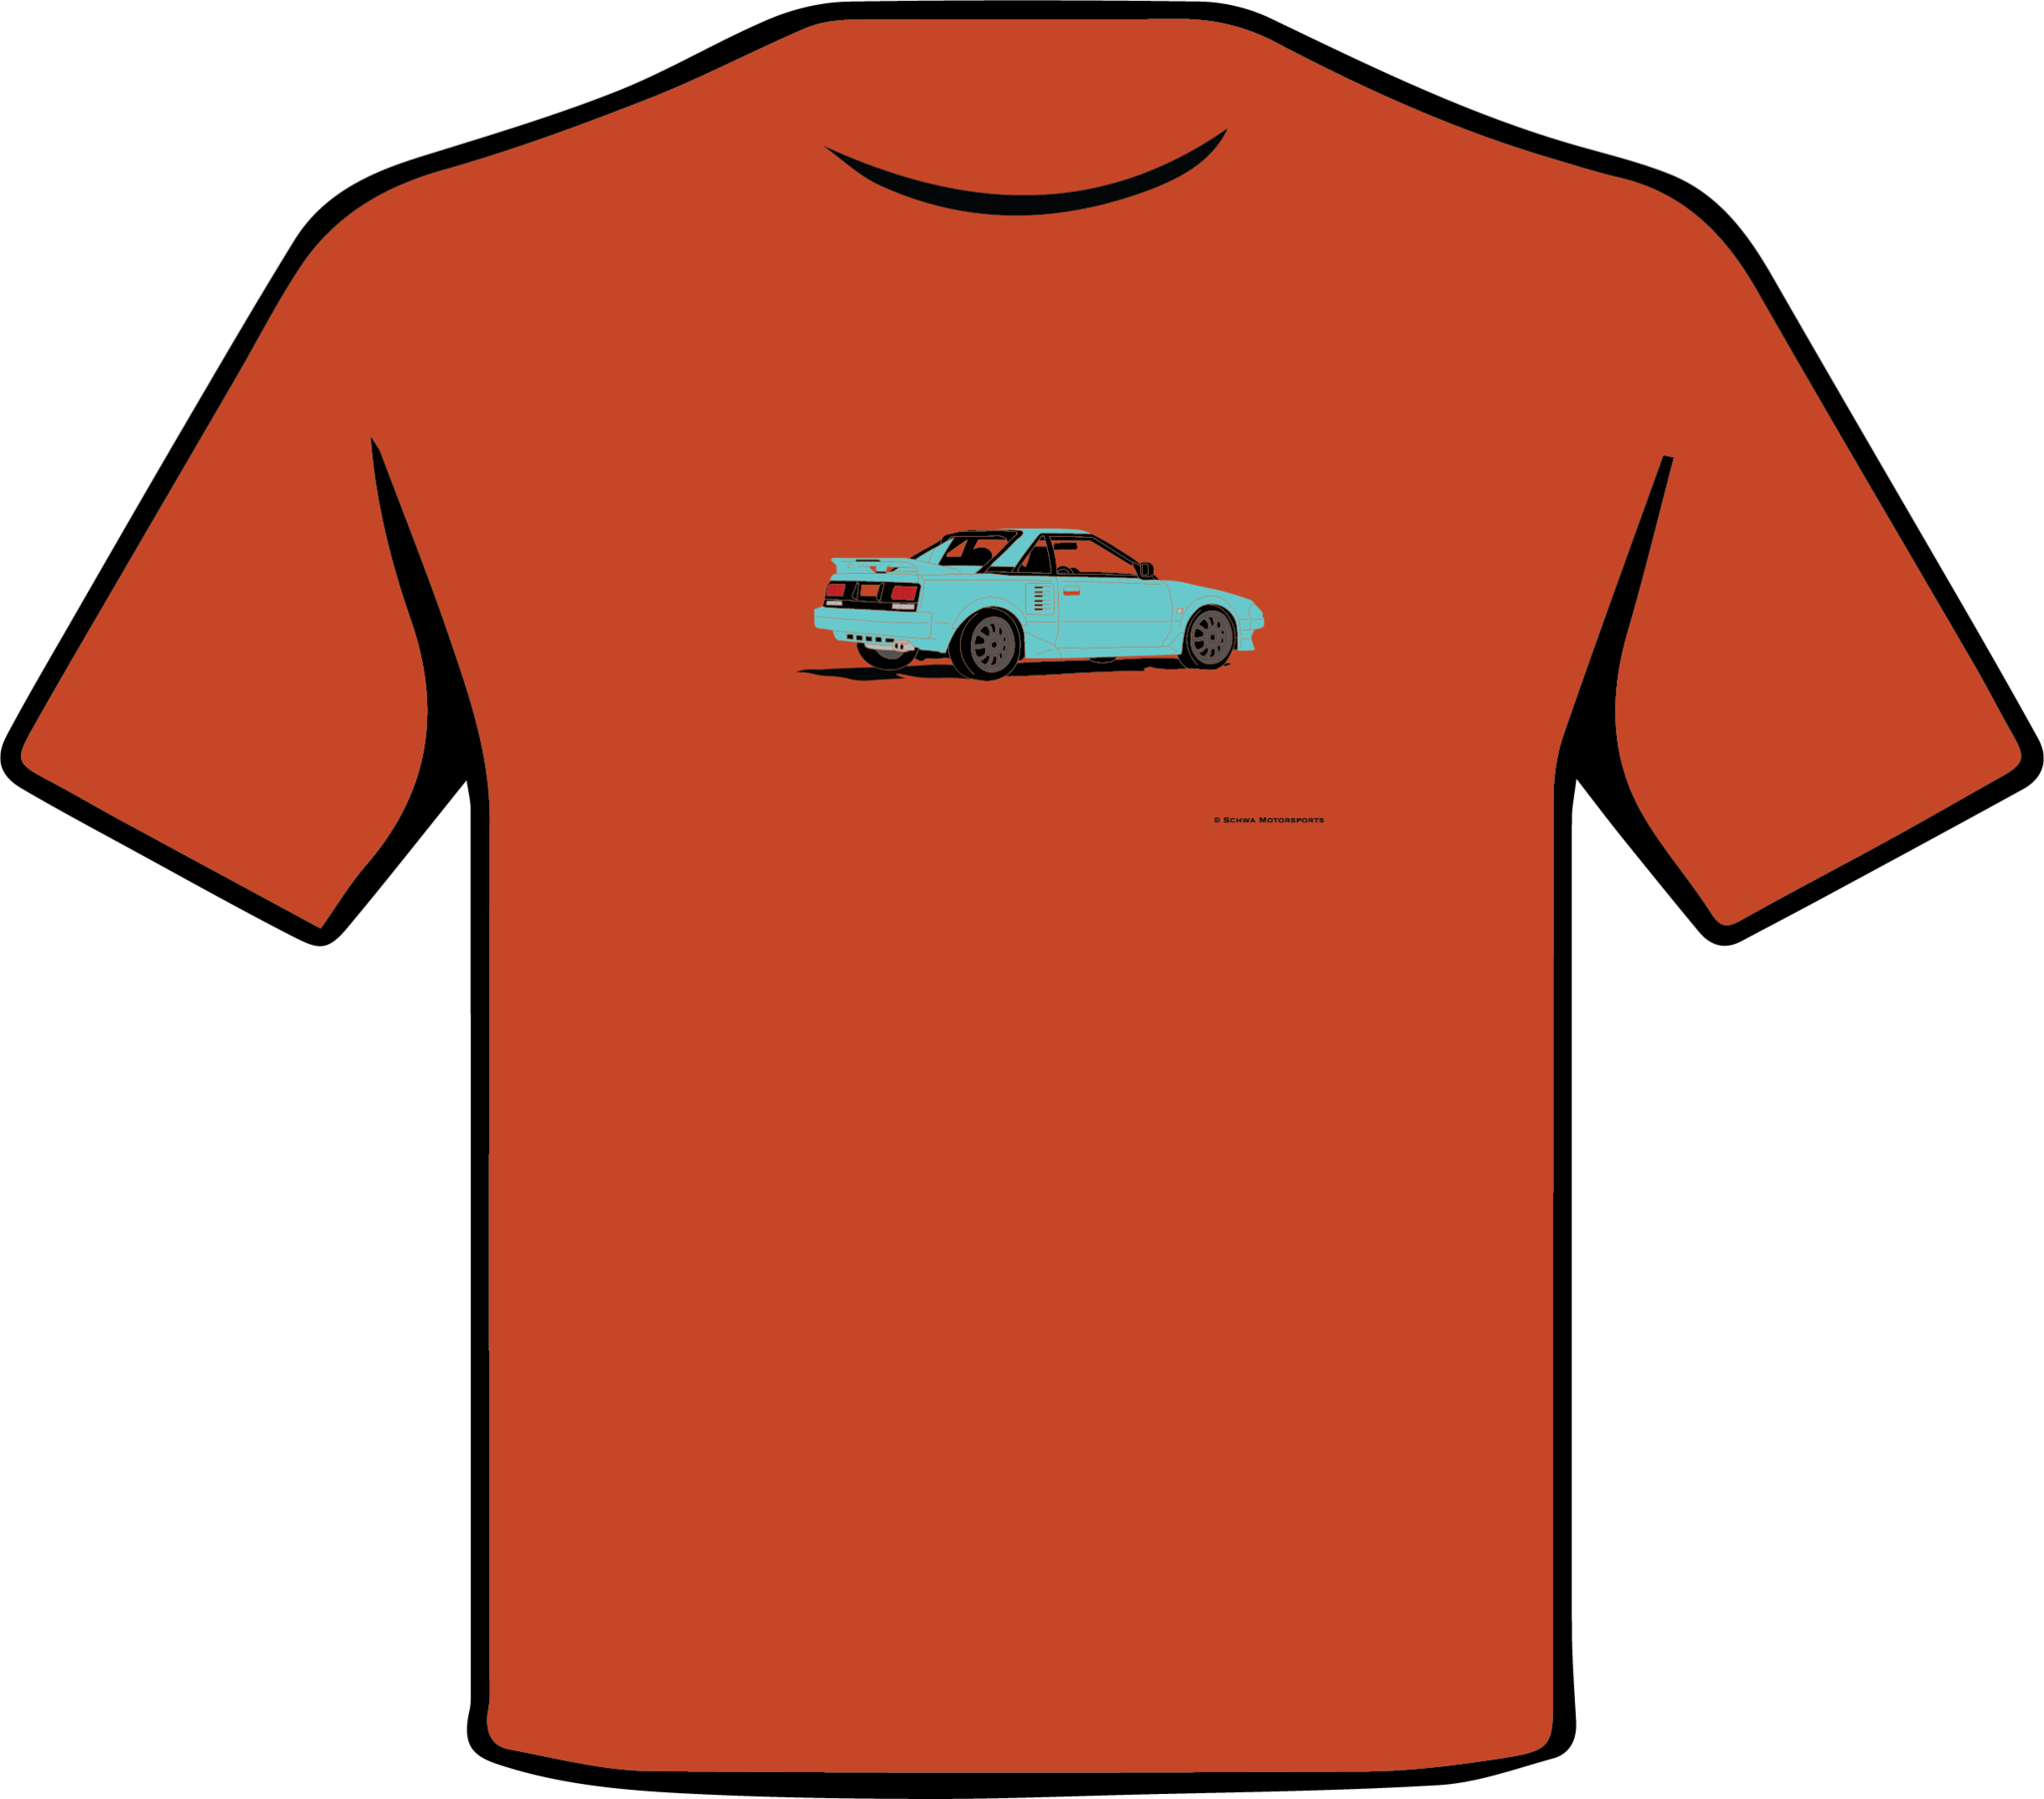 Toyota MR2 Rear 3/4 Angle Multi Color T-Shirt